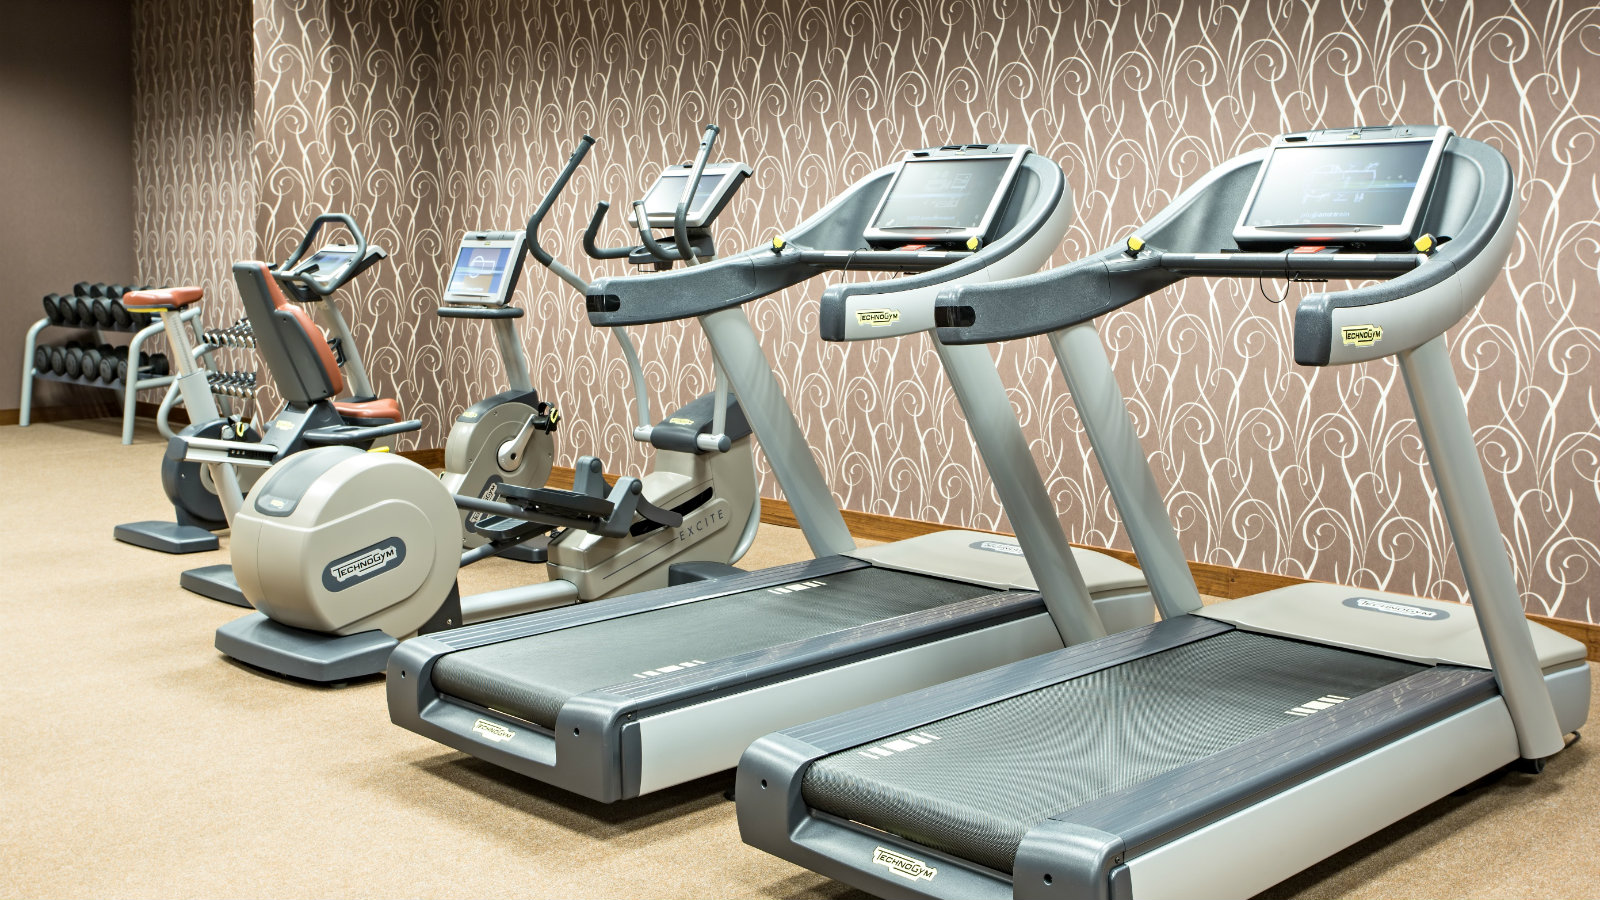 Sheraton Fitness gym with a state-of-the-art training equipment at Sheraton Moscow Sheremetyevo